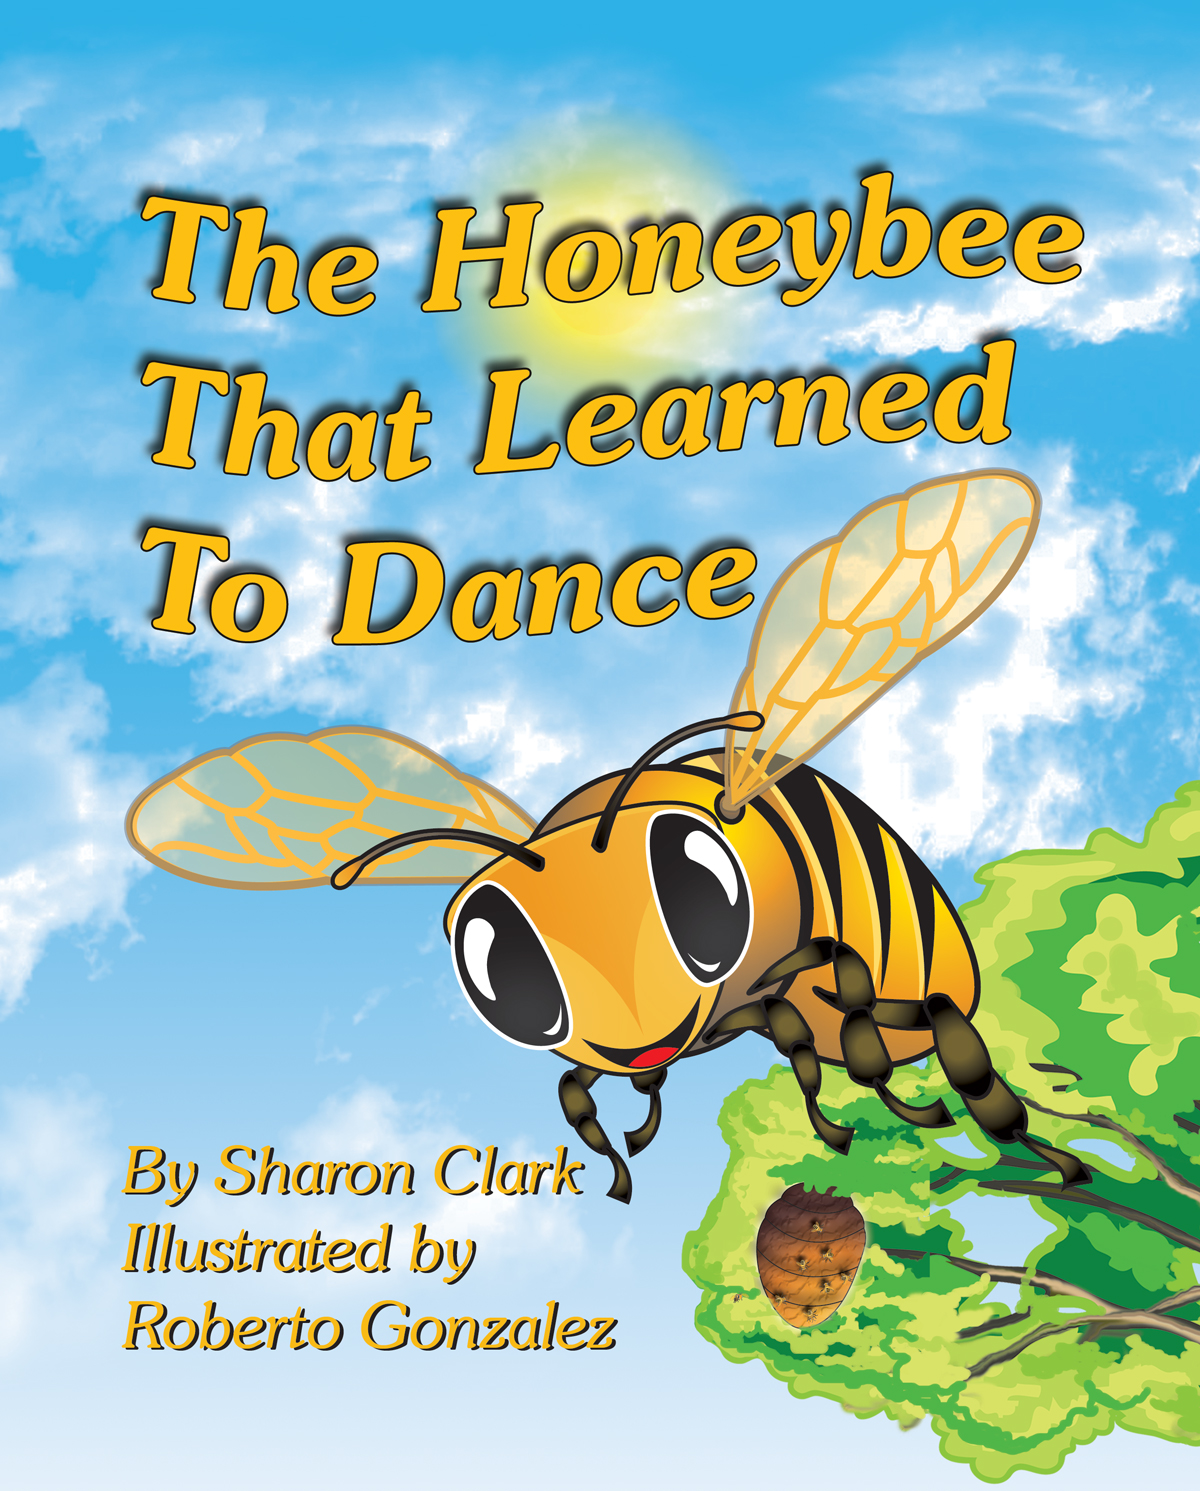 The Honeybee That Learned to Dance